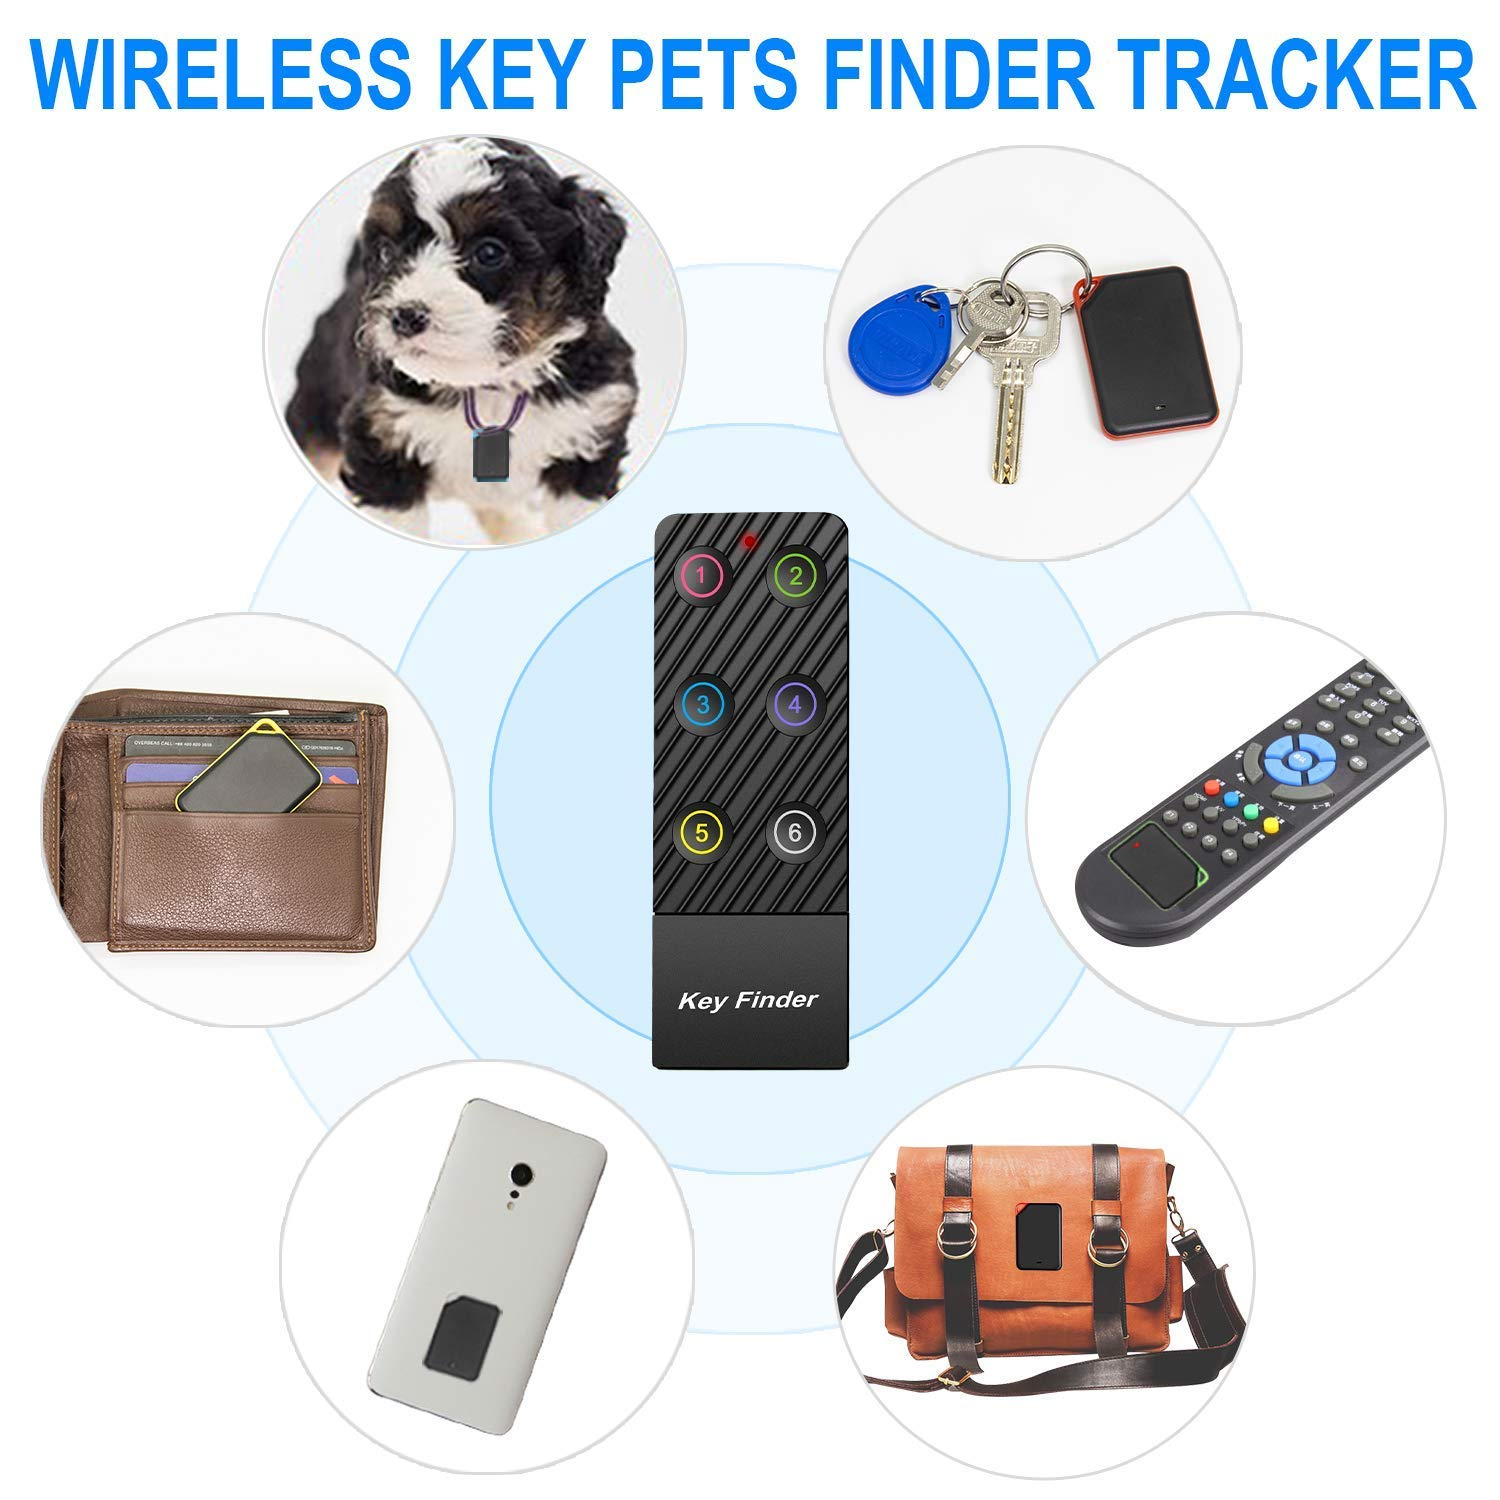 Integrated Key Pets Finder Tracker,ldcx Wireless RF Item Locator Anti Lost Keys Phone Pet Cat Dog Keychain Wallet Luggage Tag Alarm Reminder,1 RF Transmitter 6 Receivers Remote Tracking Finders by ldcx